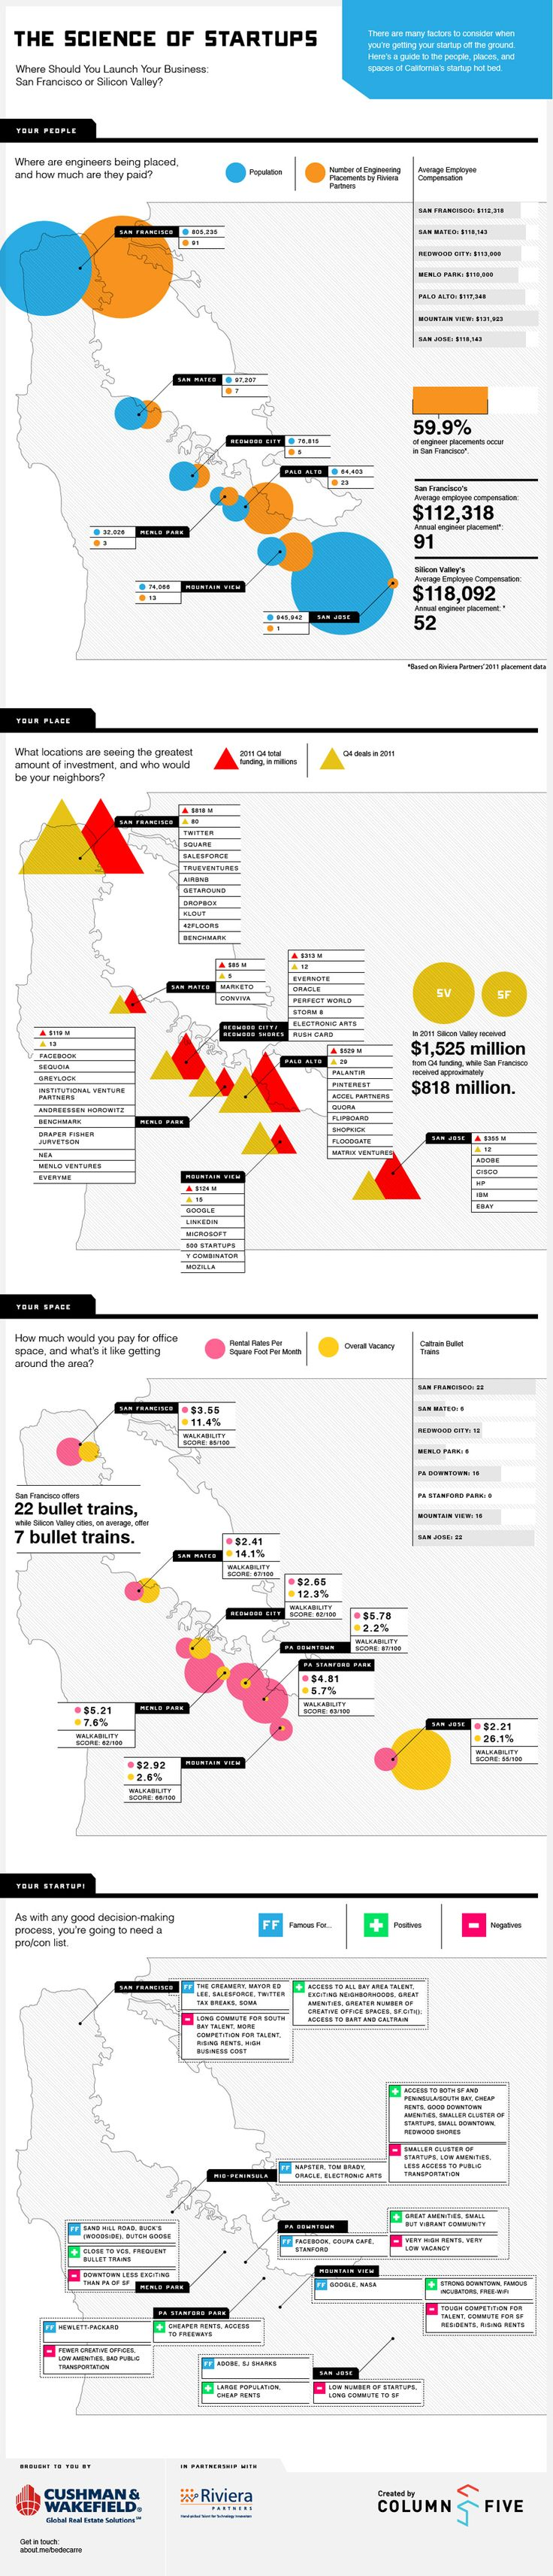 Infographic: San Francisco vs Silicon Valley: Where Should You Build Your Business?